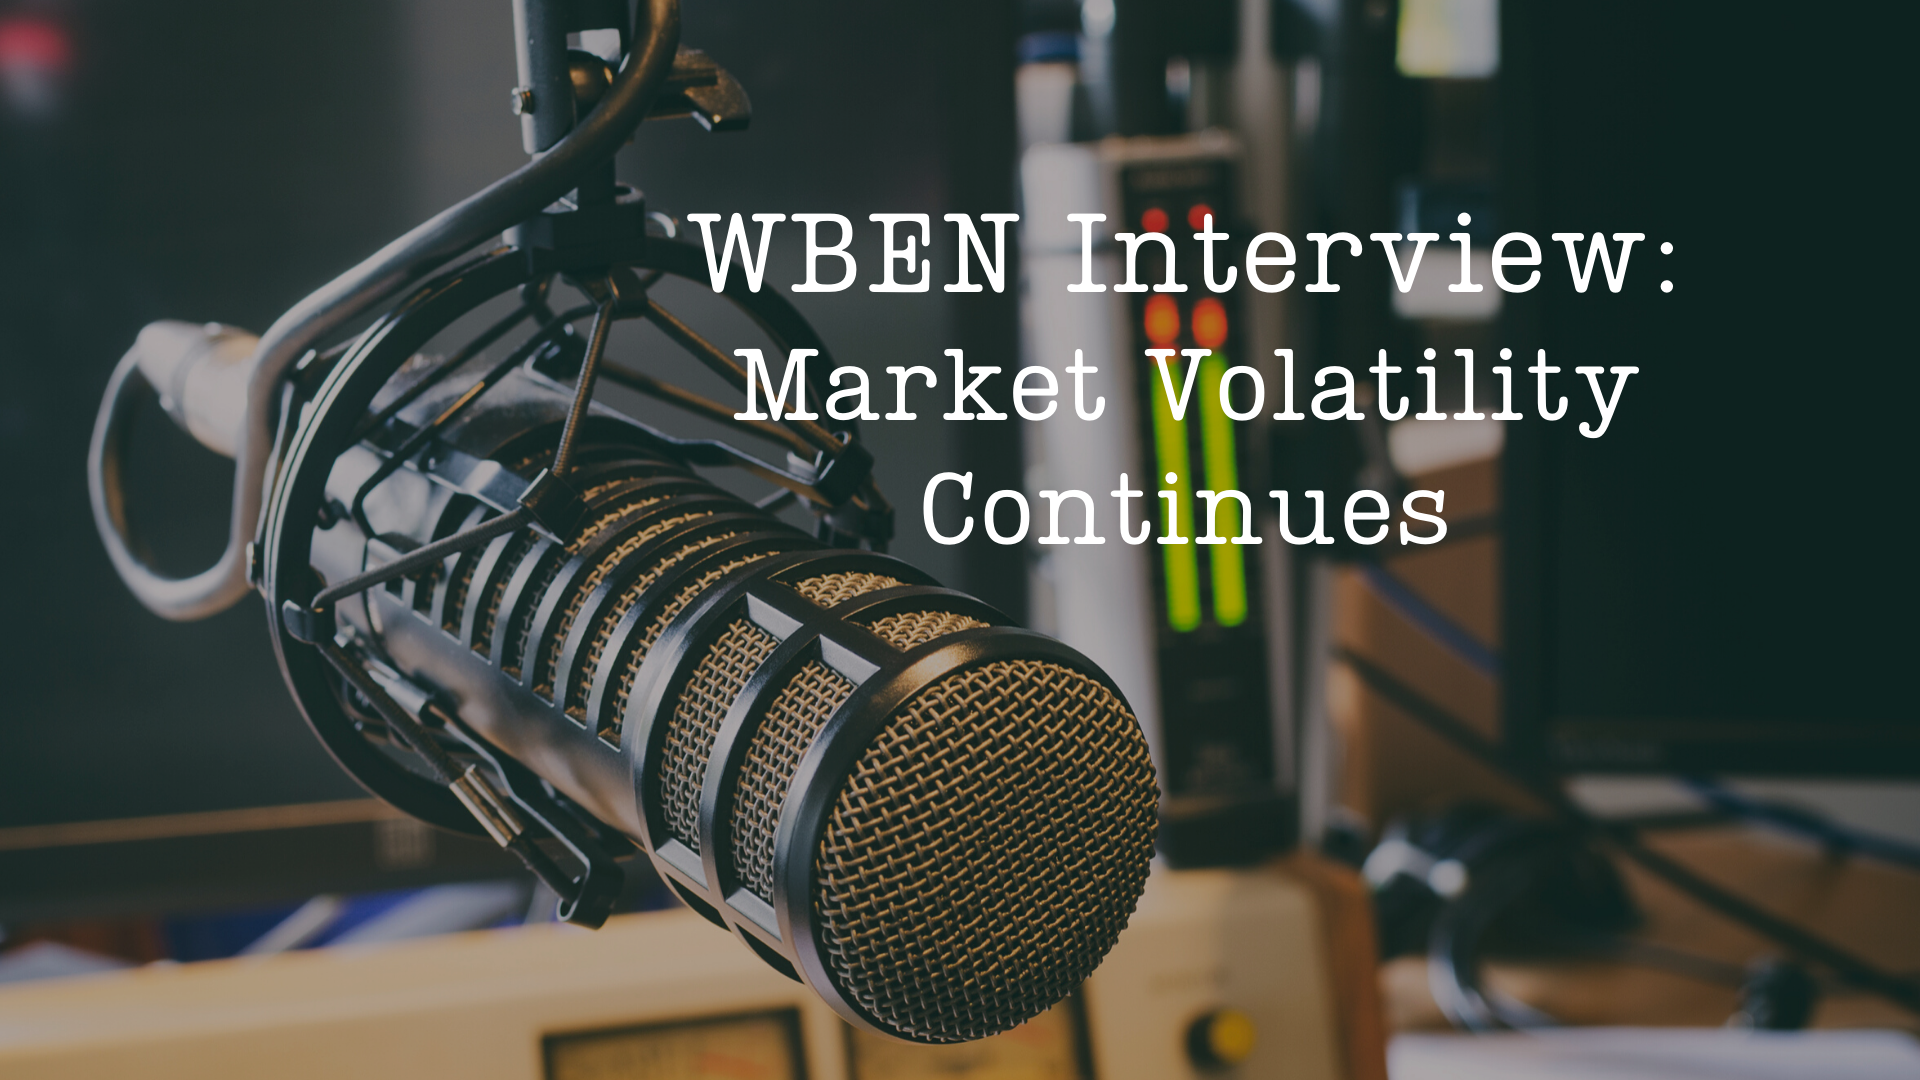 WBEN Interview: Market Volatility Continues